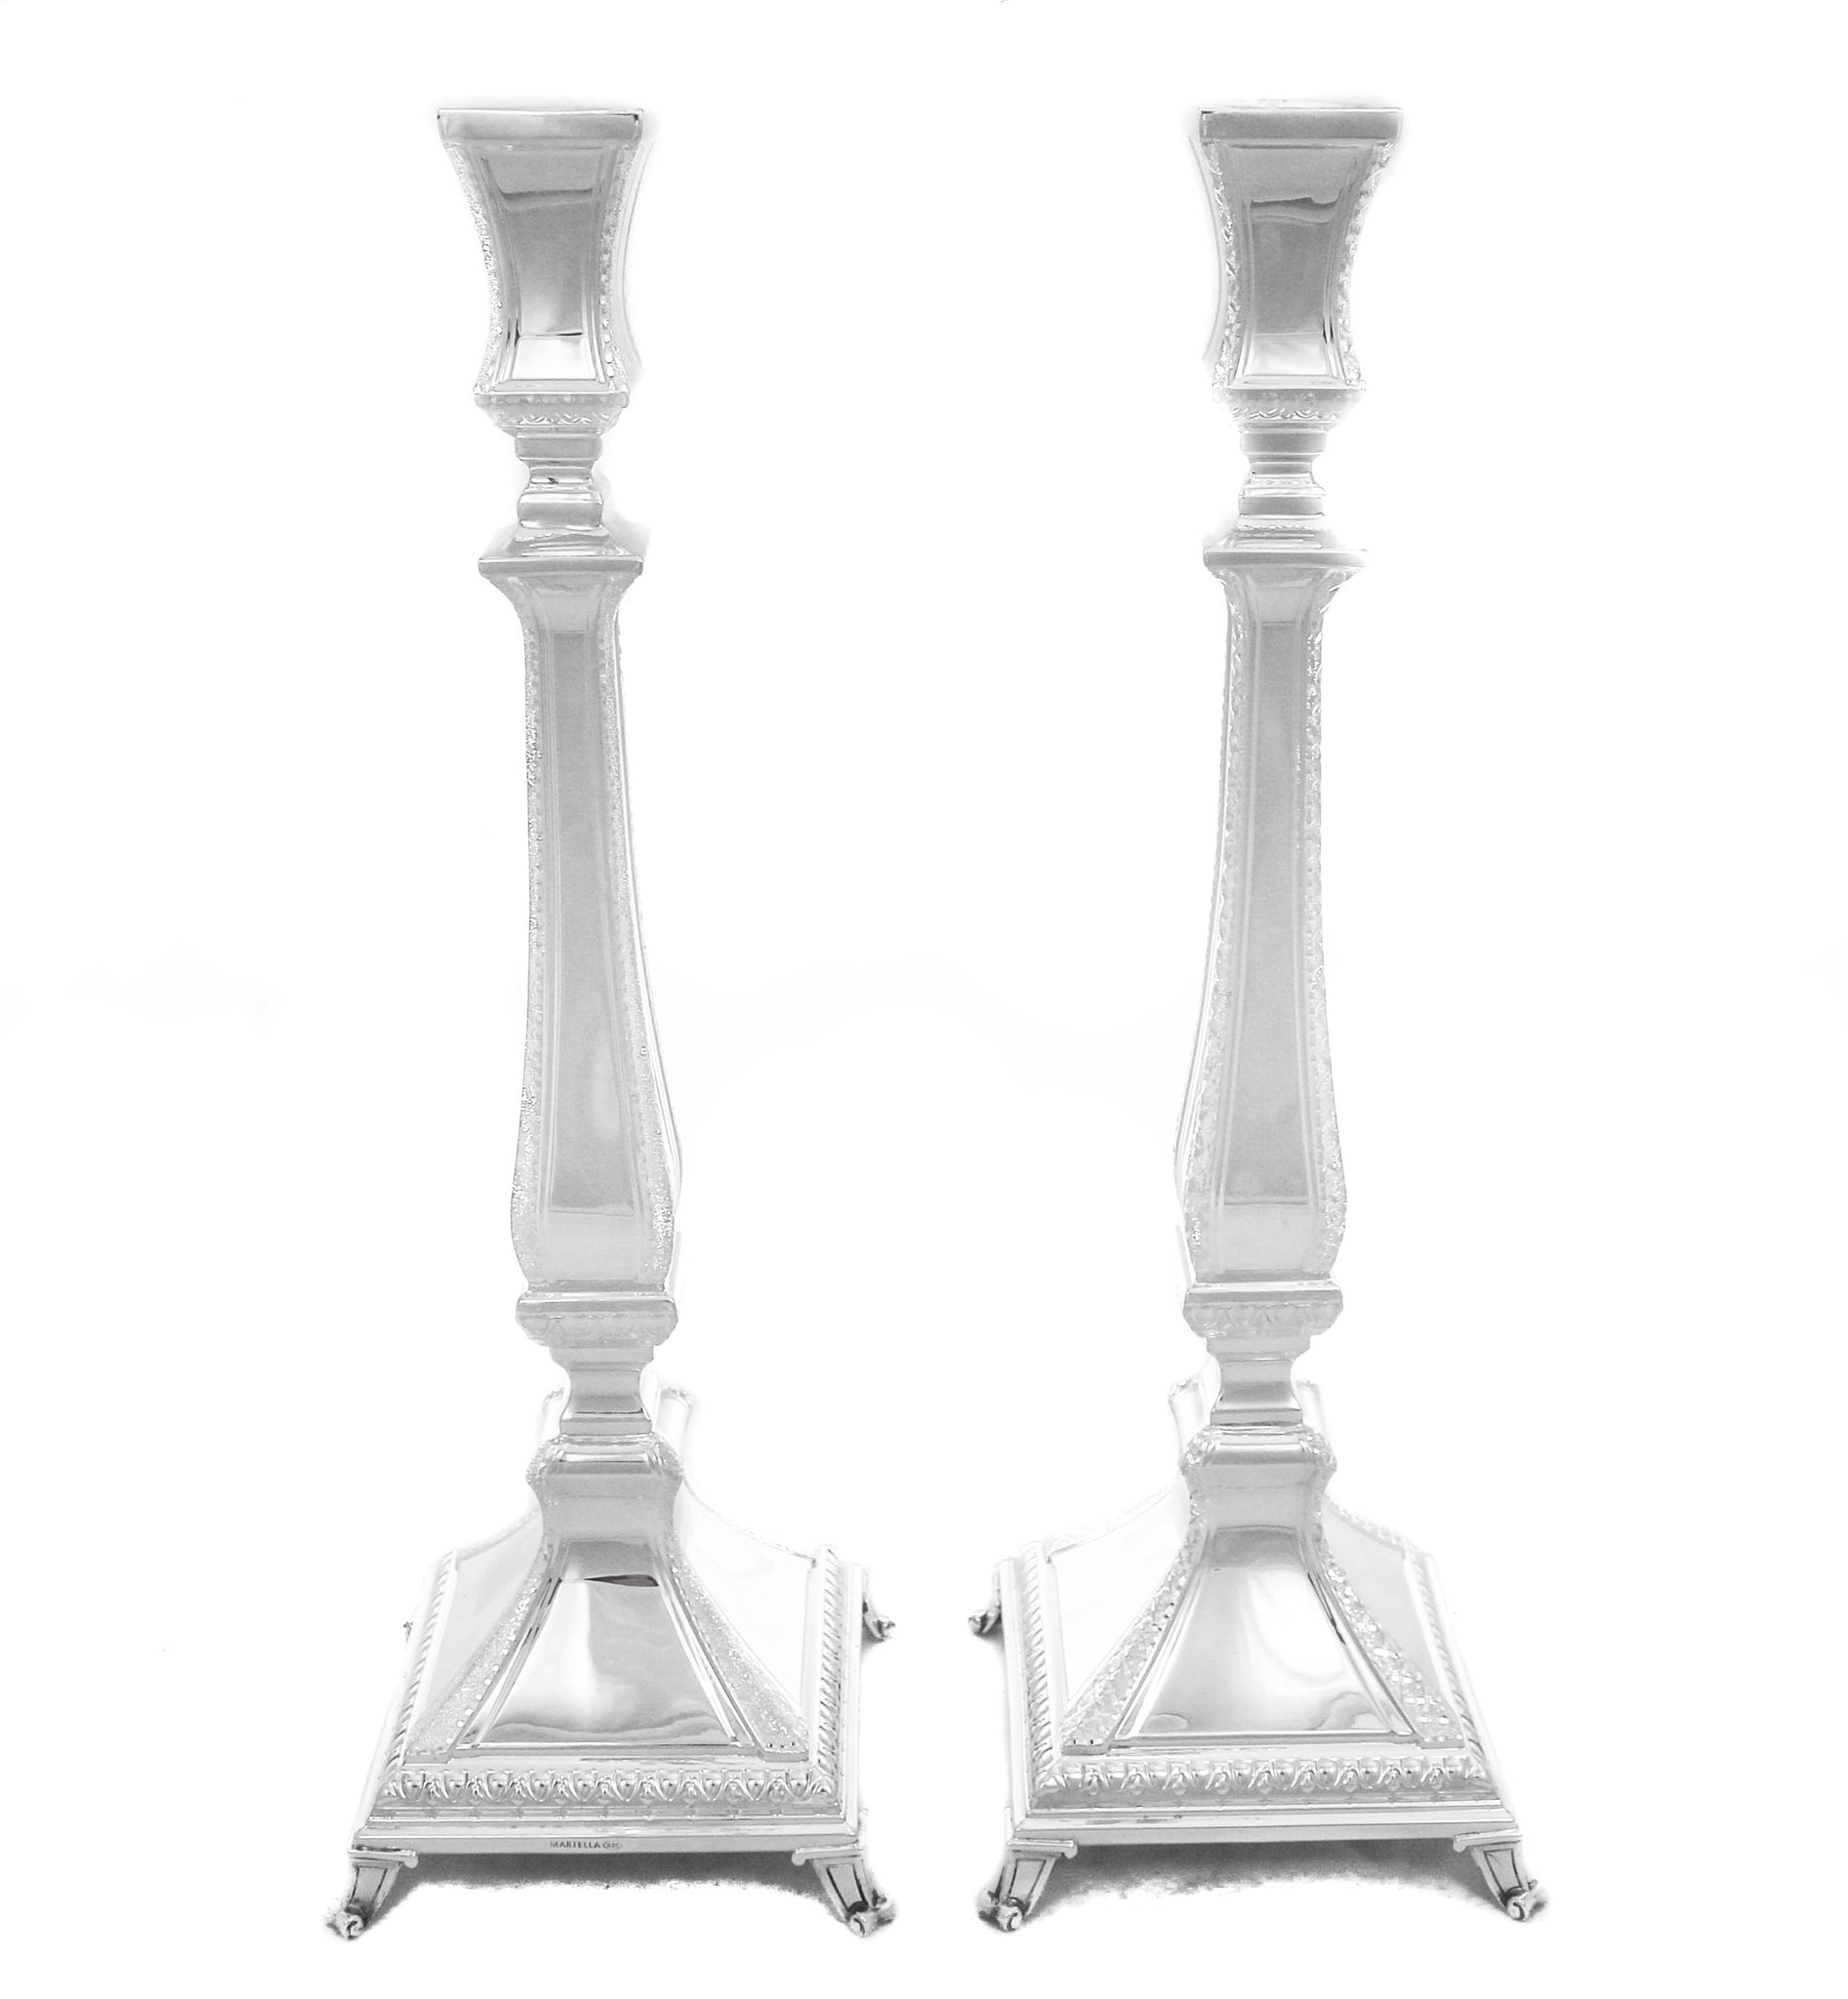 FINE 925 STERLING SILVER LIONI CHASED DIAMOND CUT TRIM SQUARE CANDLESTICKS